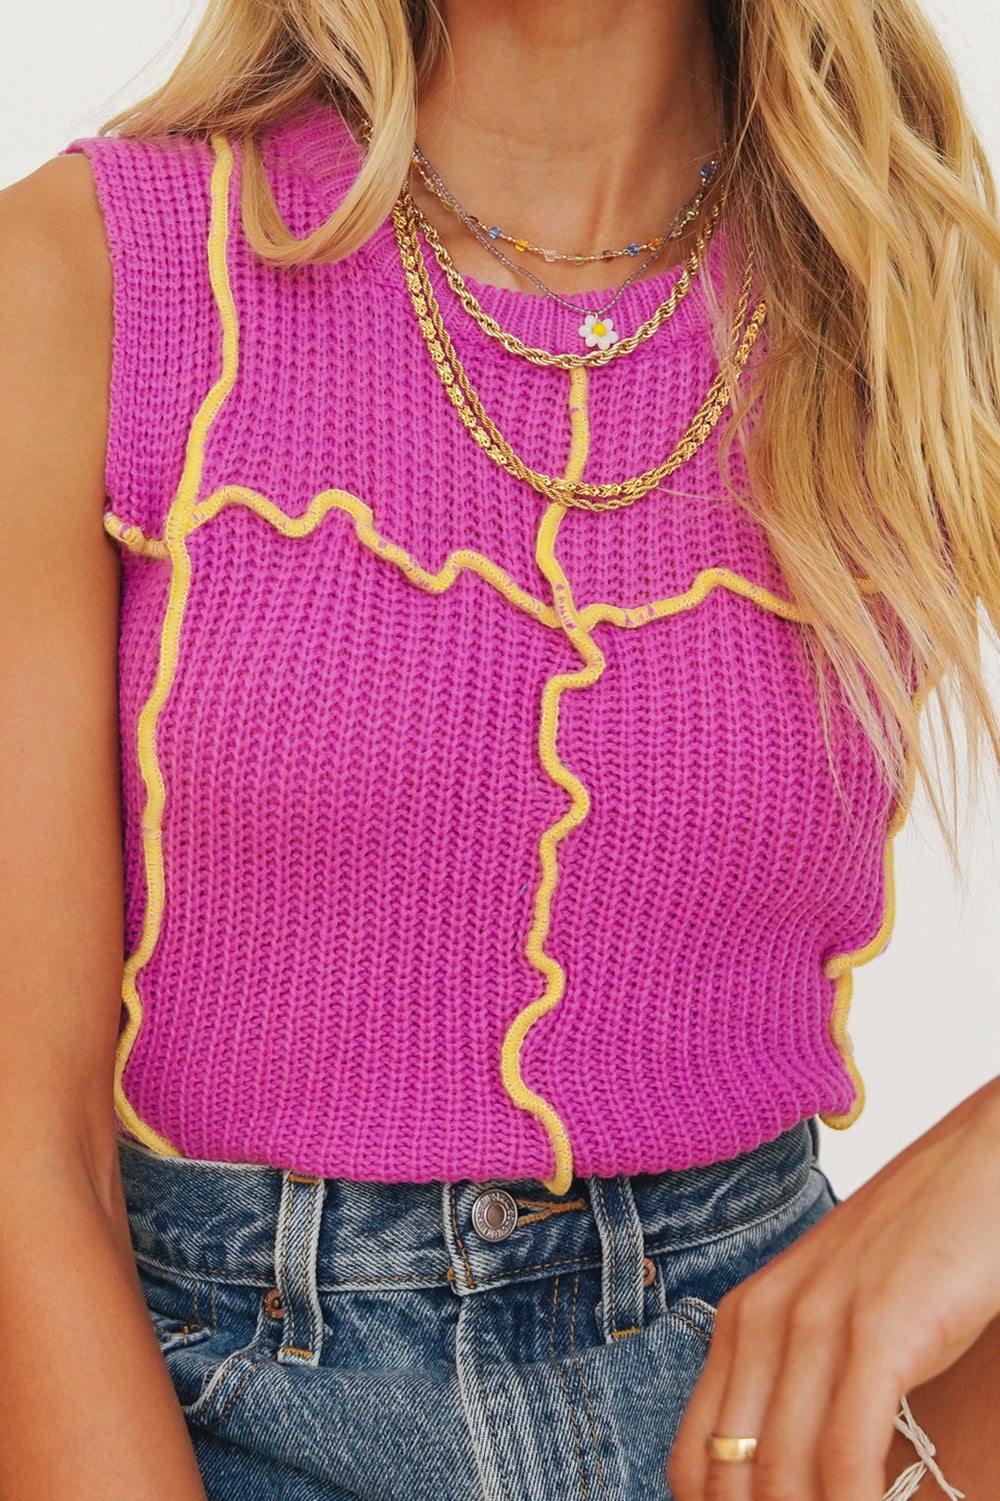 Life In Colour Knit Top // Magenta